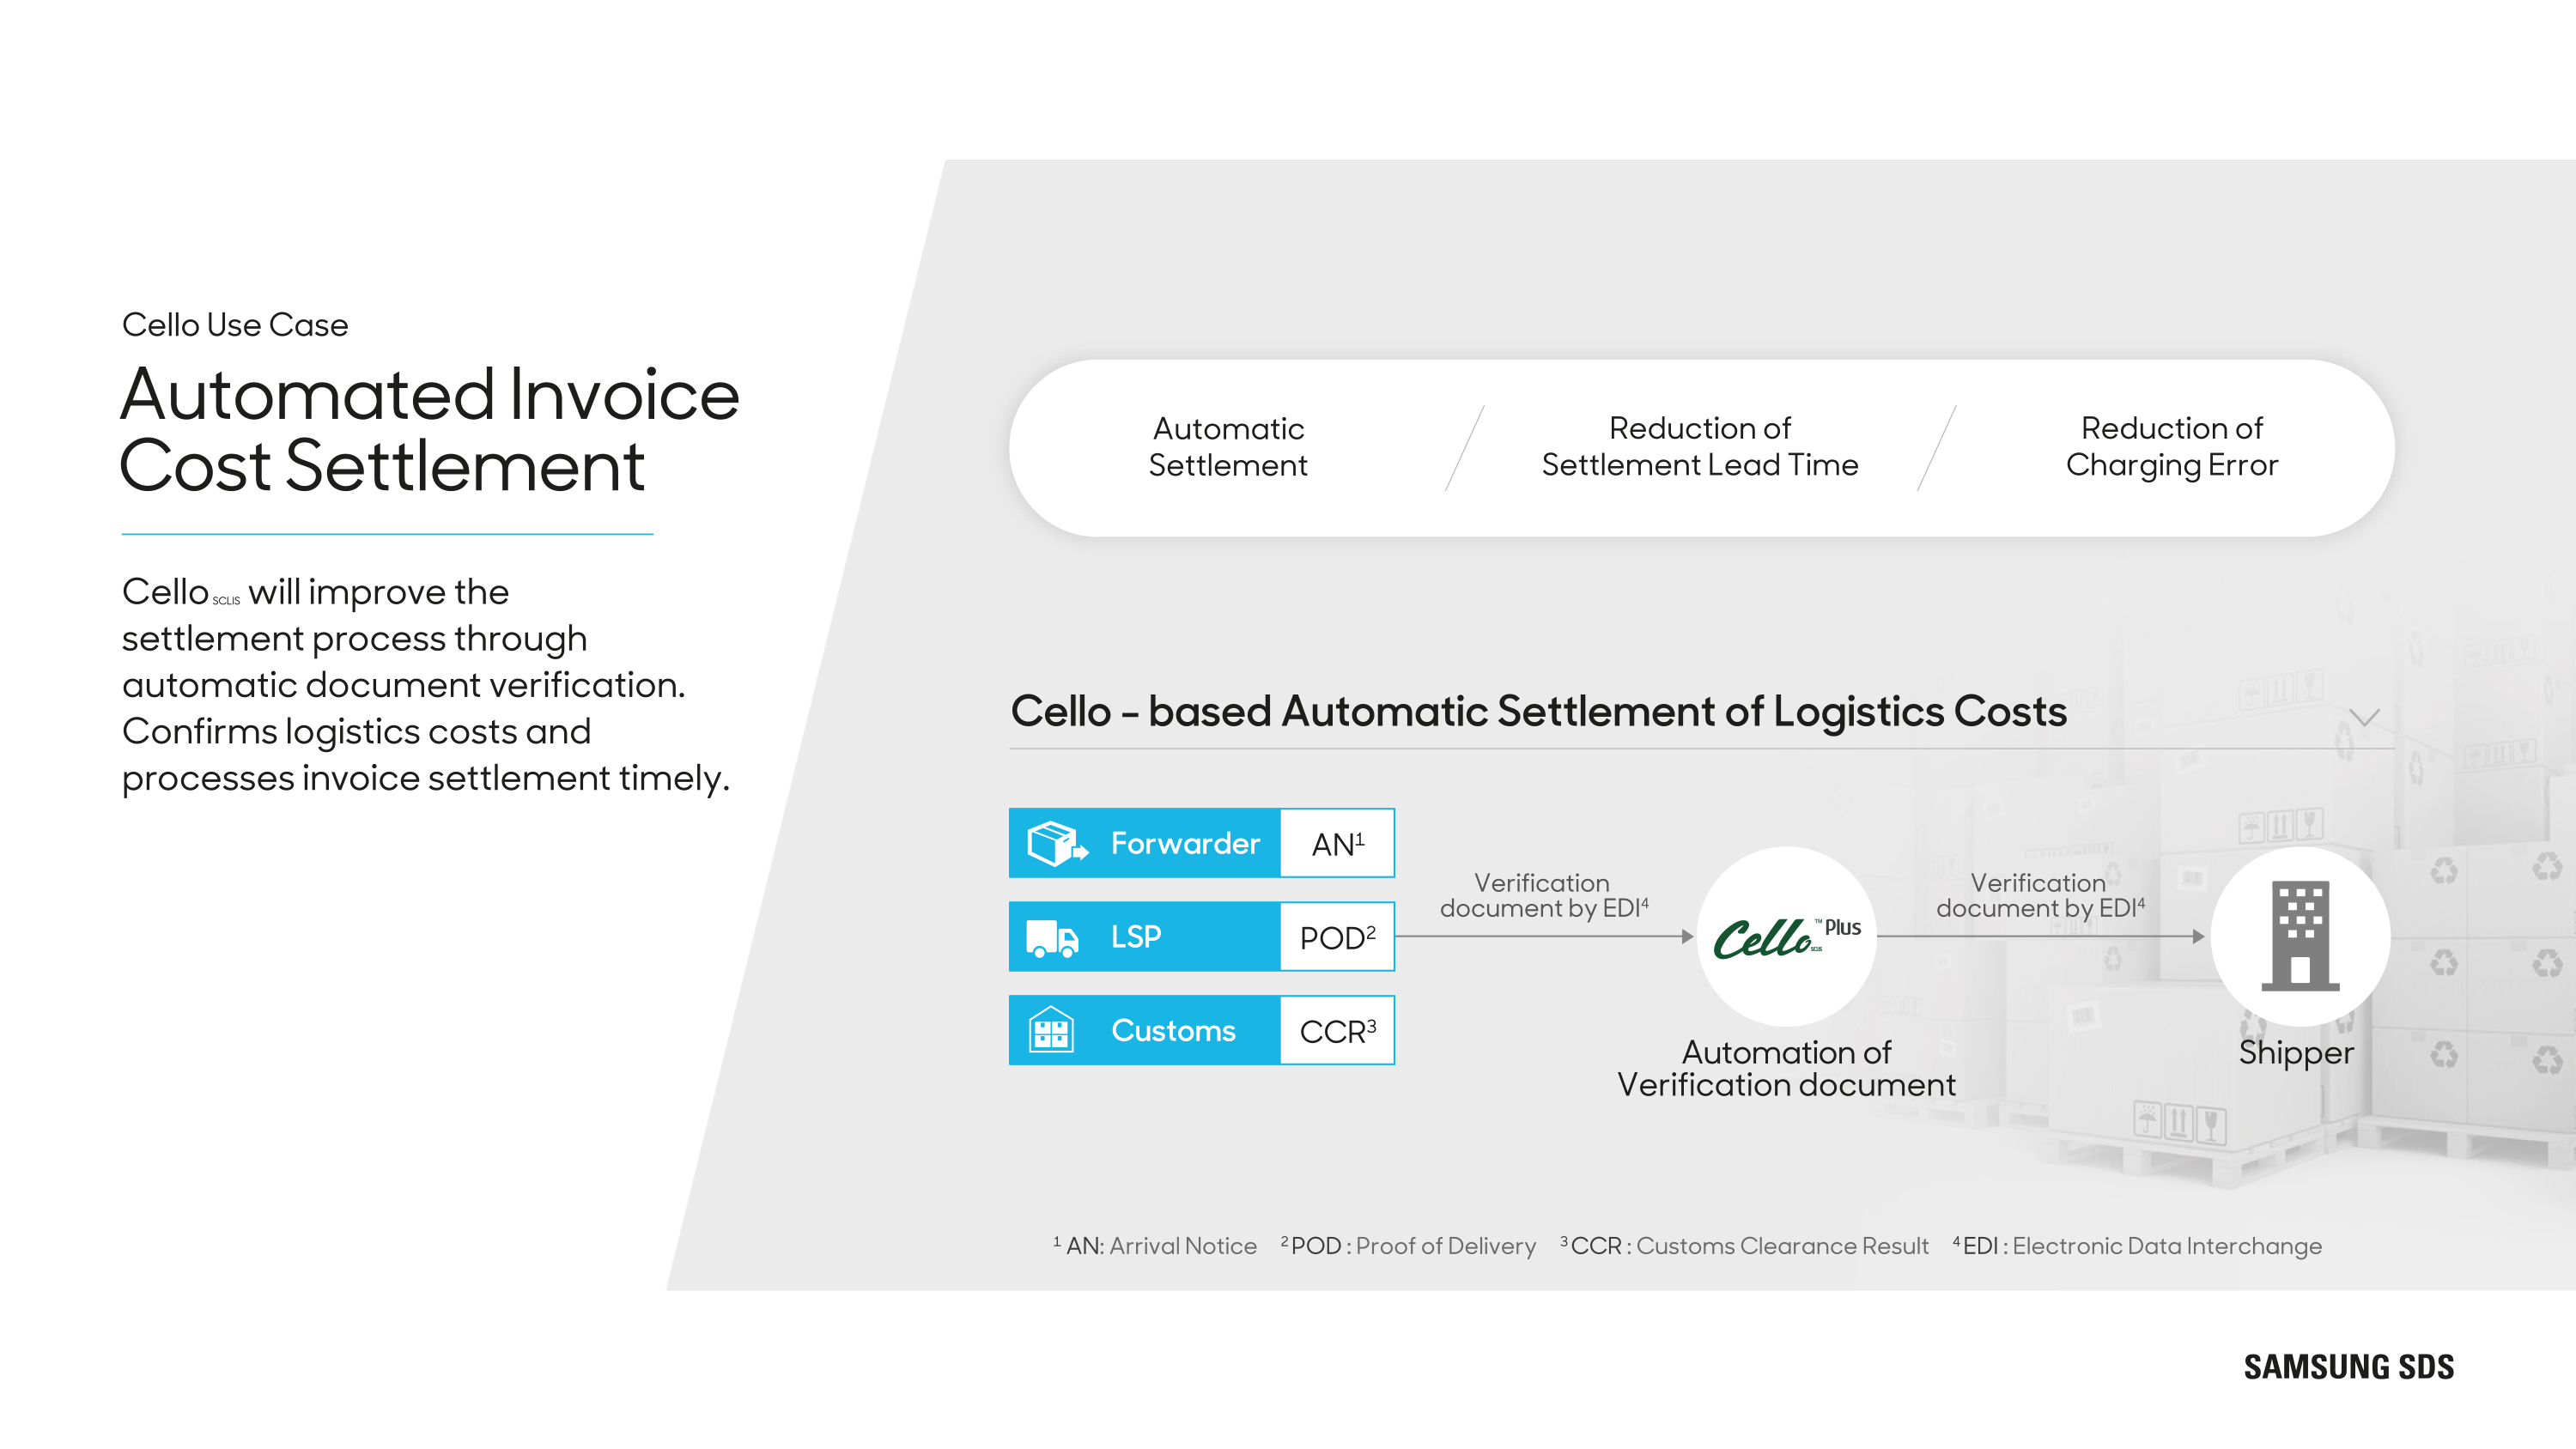 Cello will improve the settlement process through automatic document verification. Confirms logistics costs and processes invoice settlement timely.